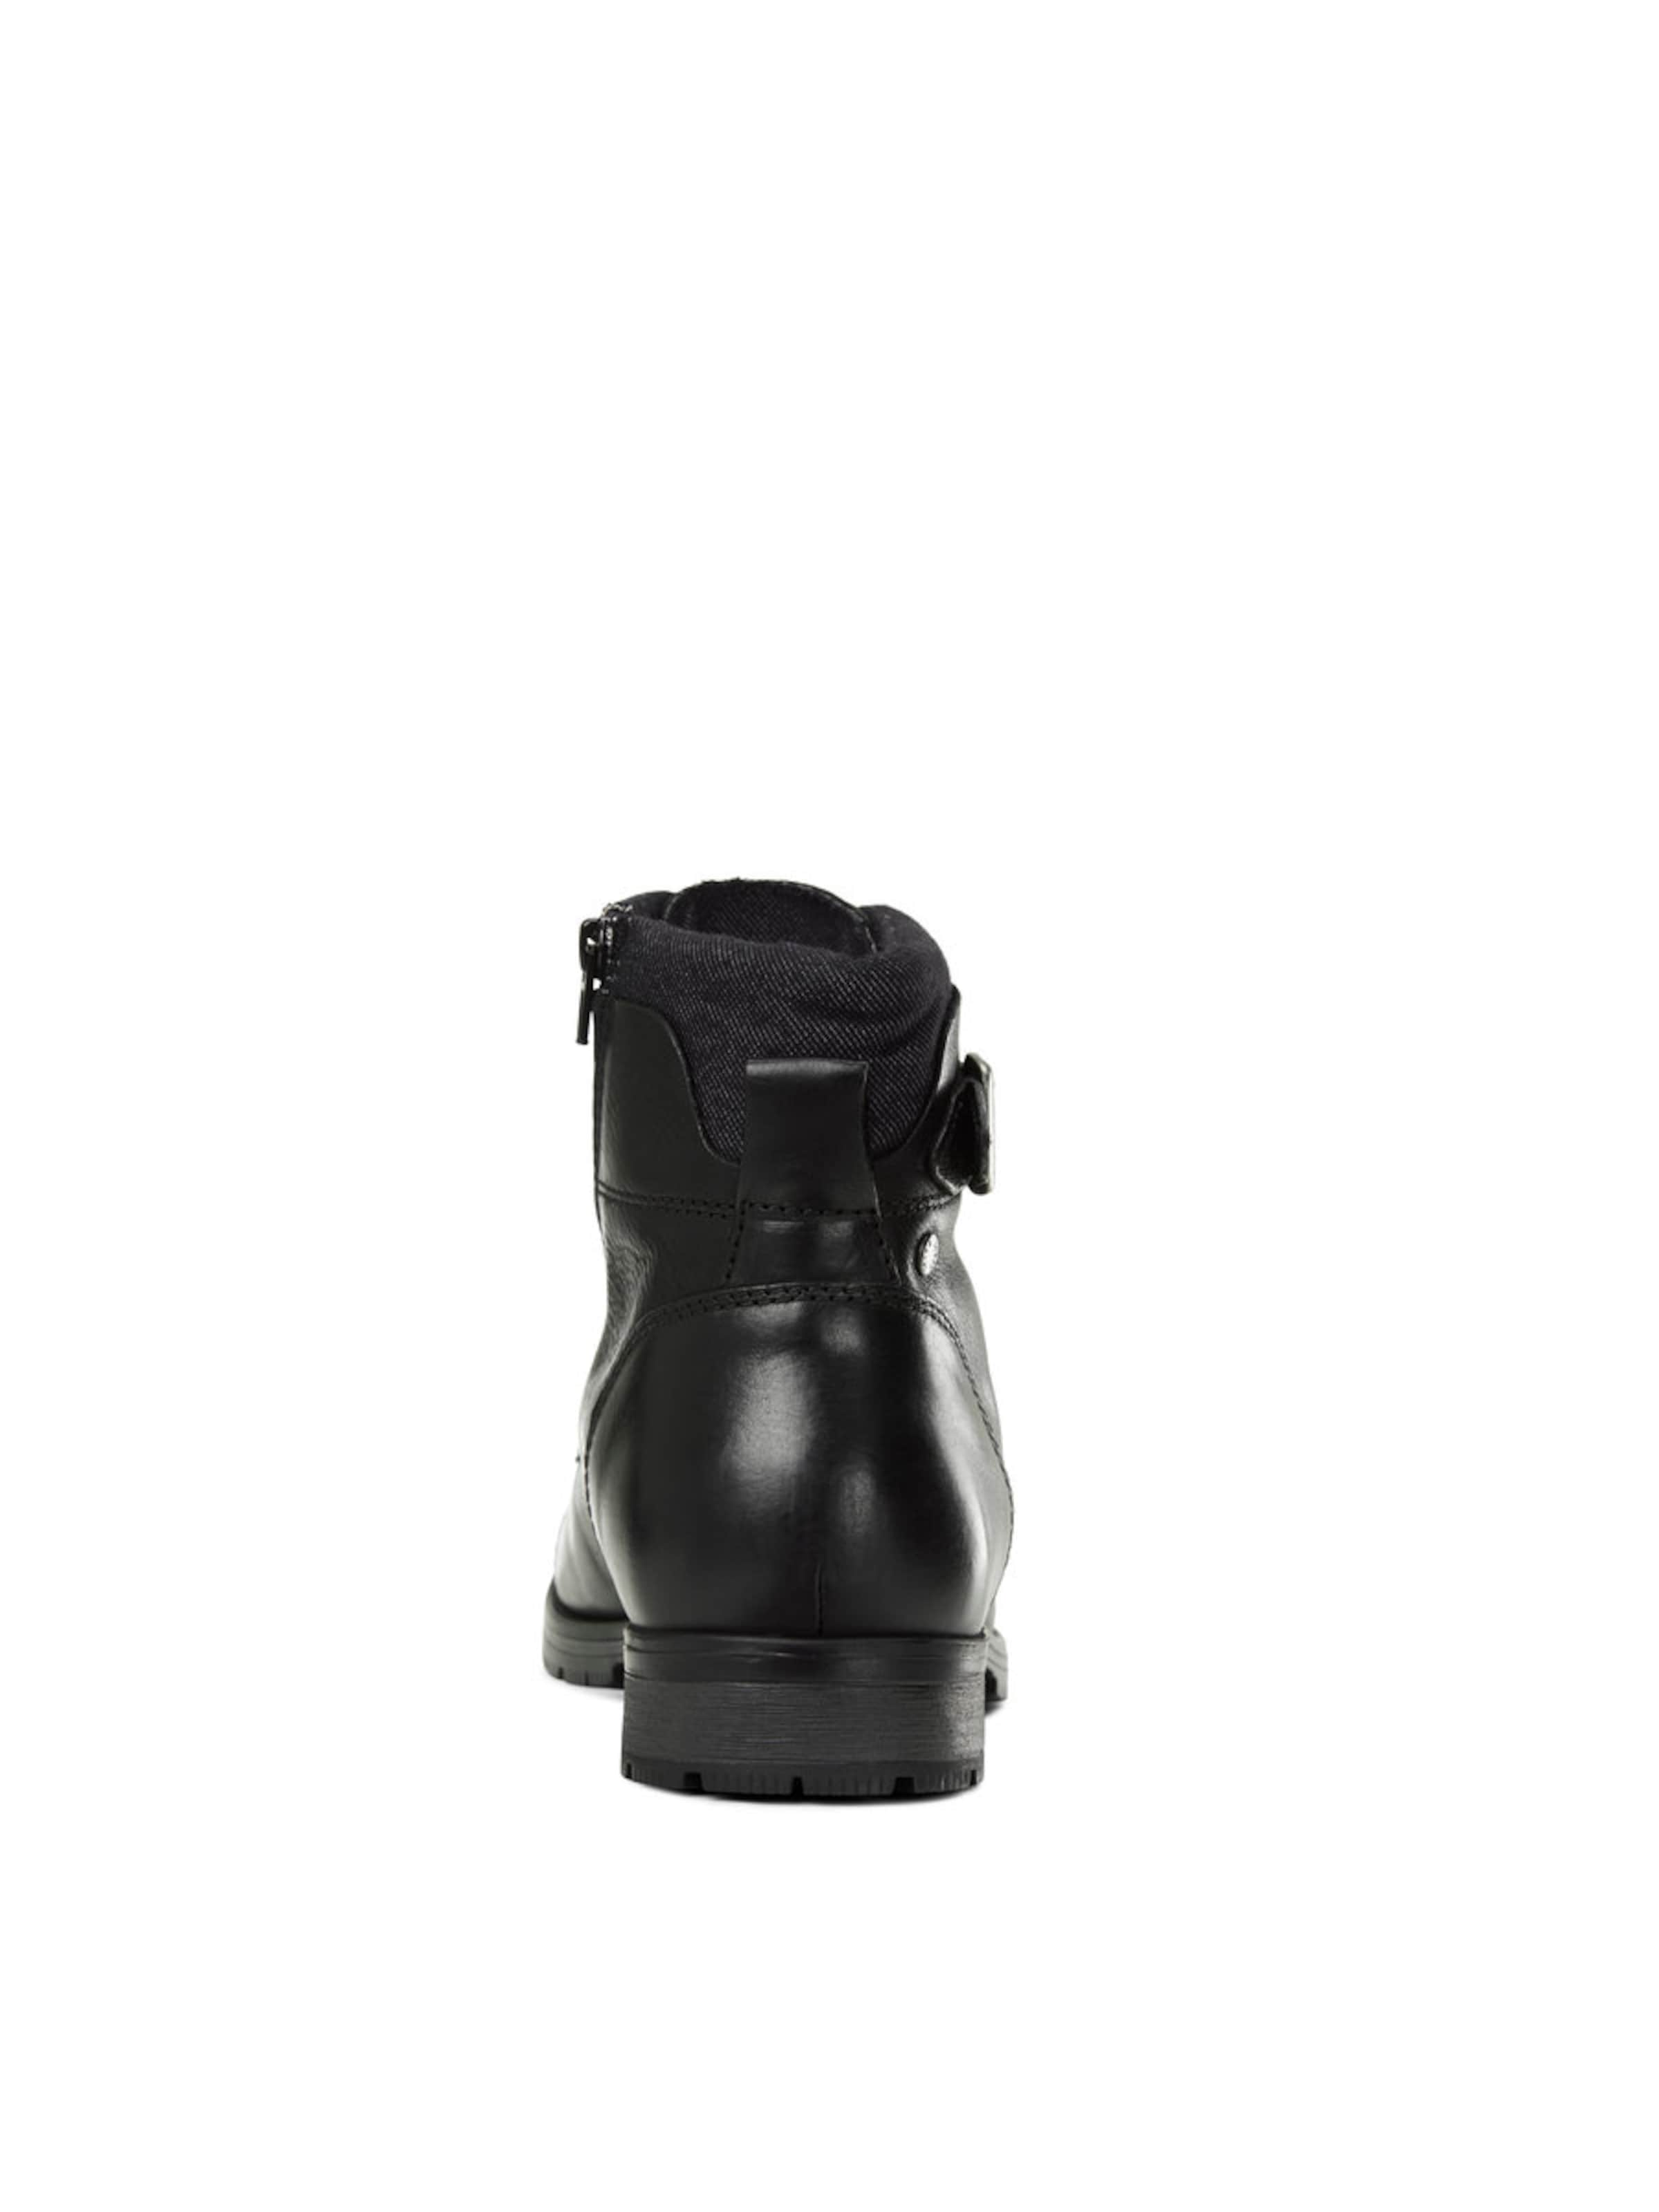 Stiefel Jones Jackamp; Jackamp; Stiefel In Jones Jones Schwarz Jackamp; In Schwarz iwZPkXuOT